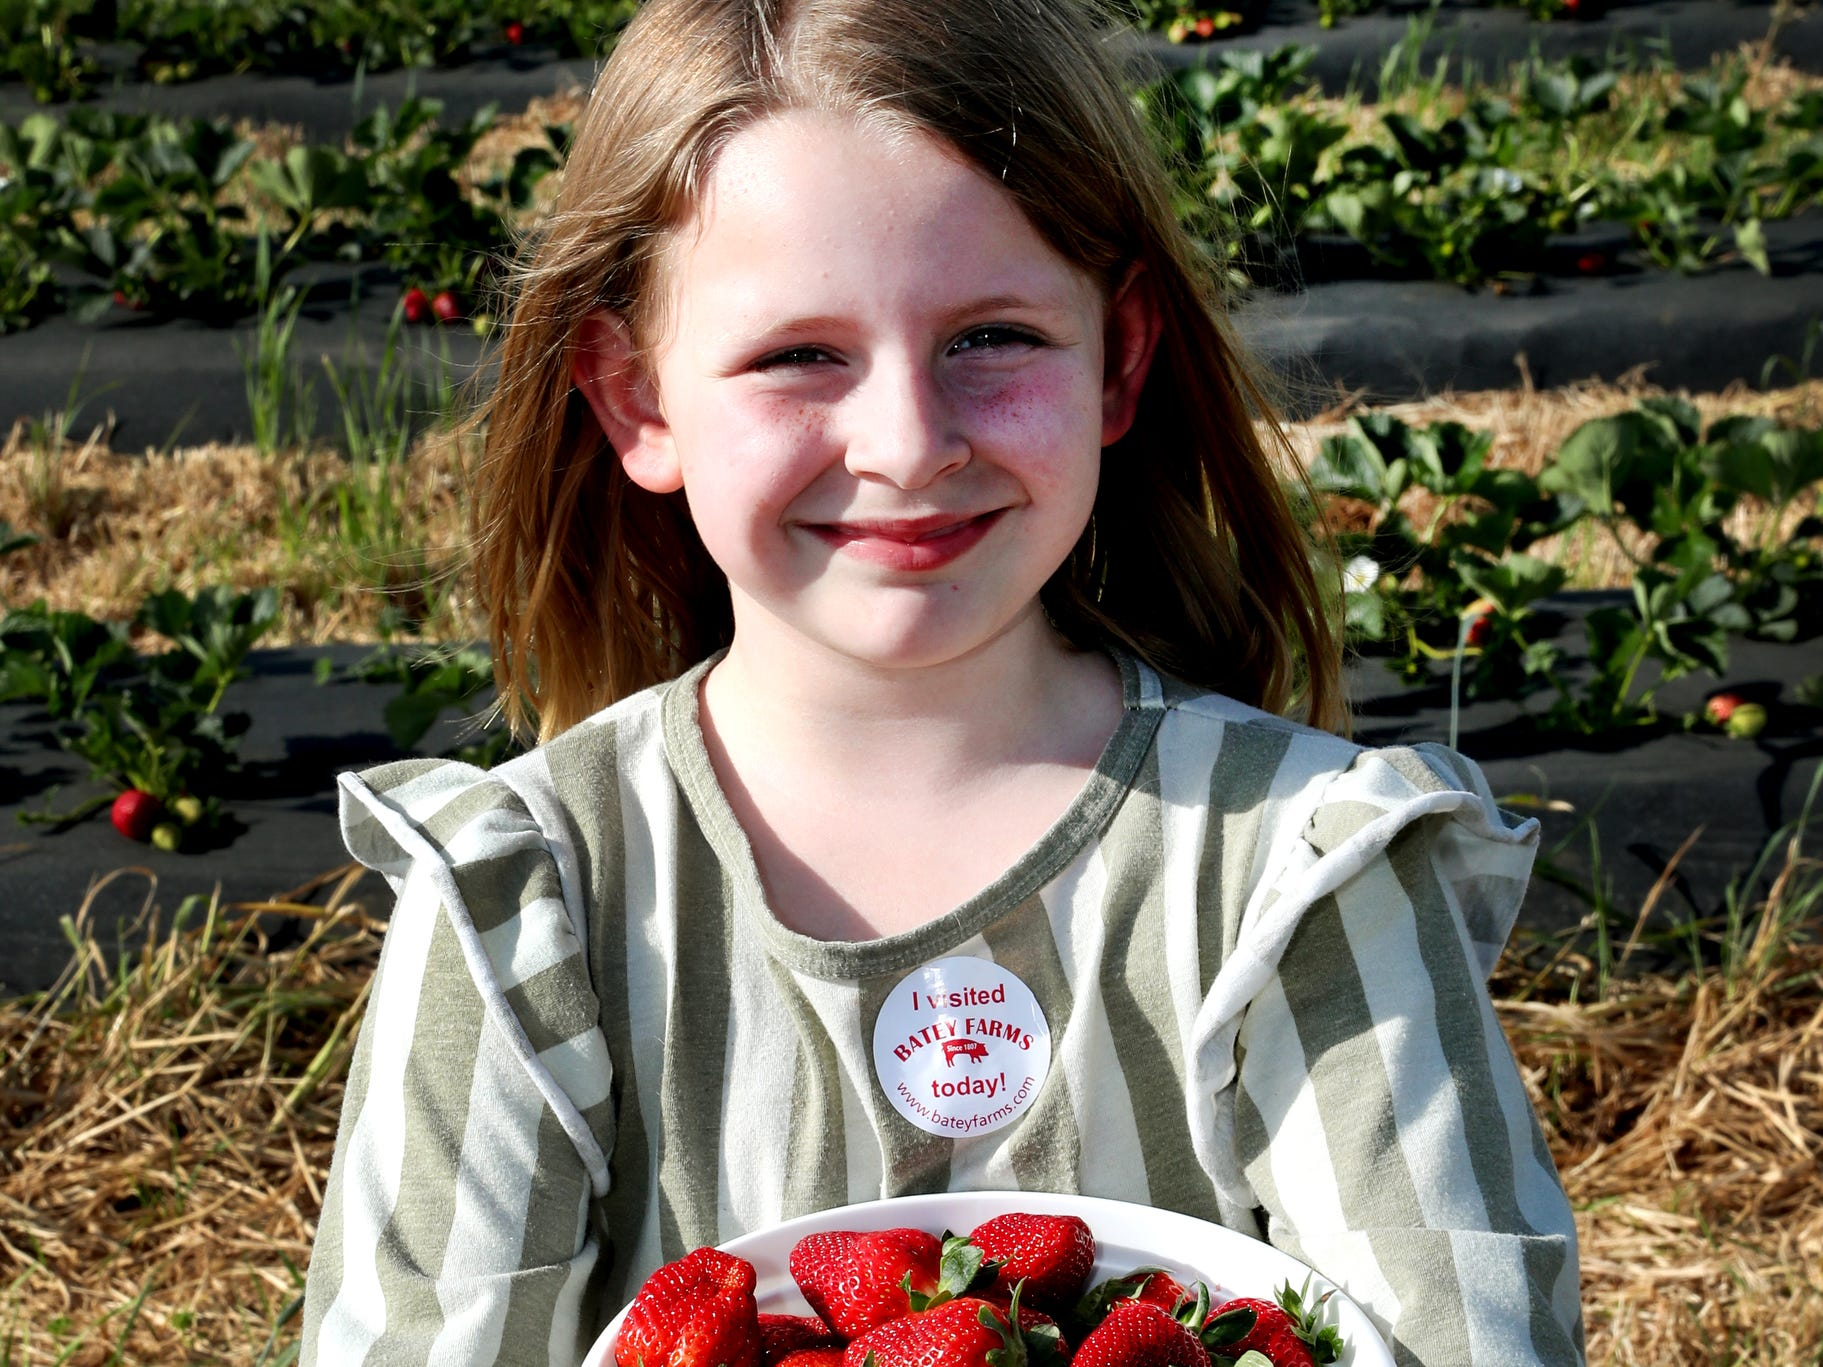 McKenna Davidson, 7, shows off her full basket of strawberries that she and her mom and sister picked on Wednesday April 24, 2019, at Batey Farms in Murfreesboro.